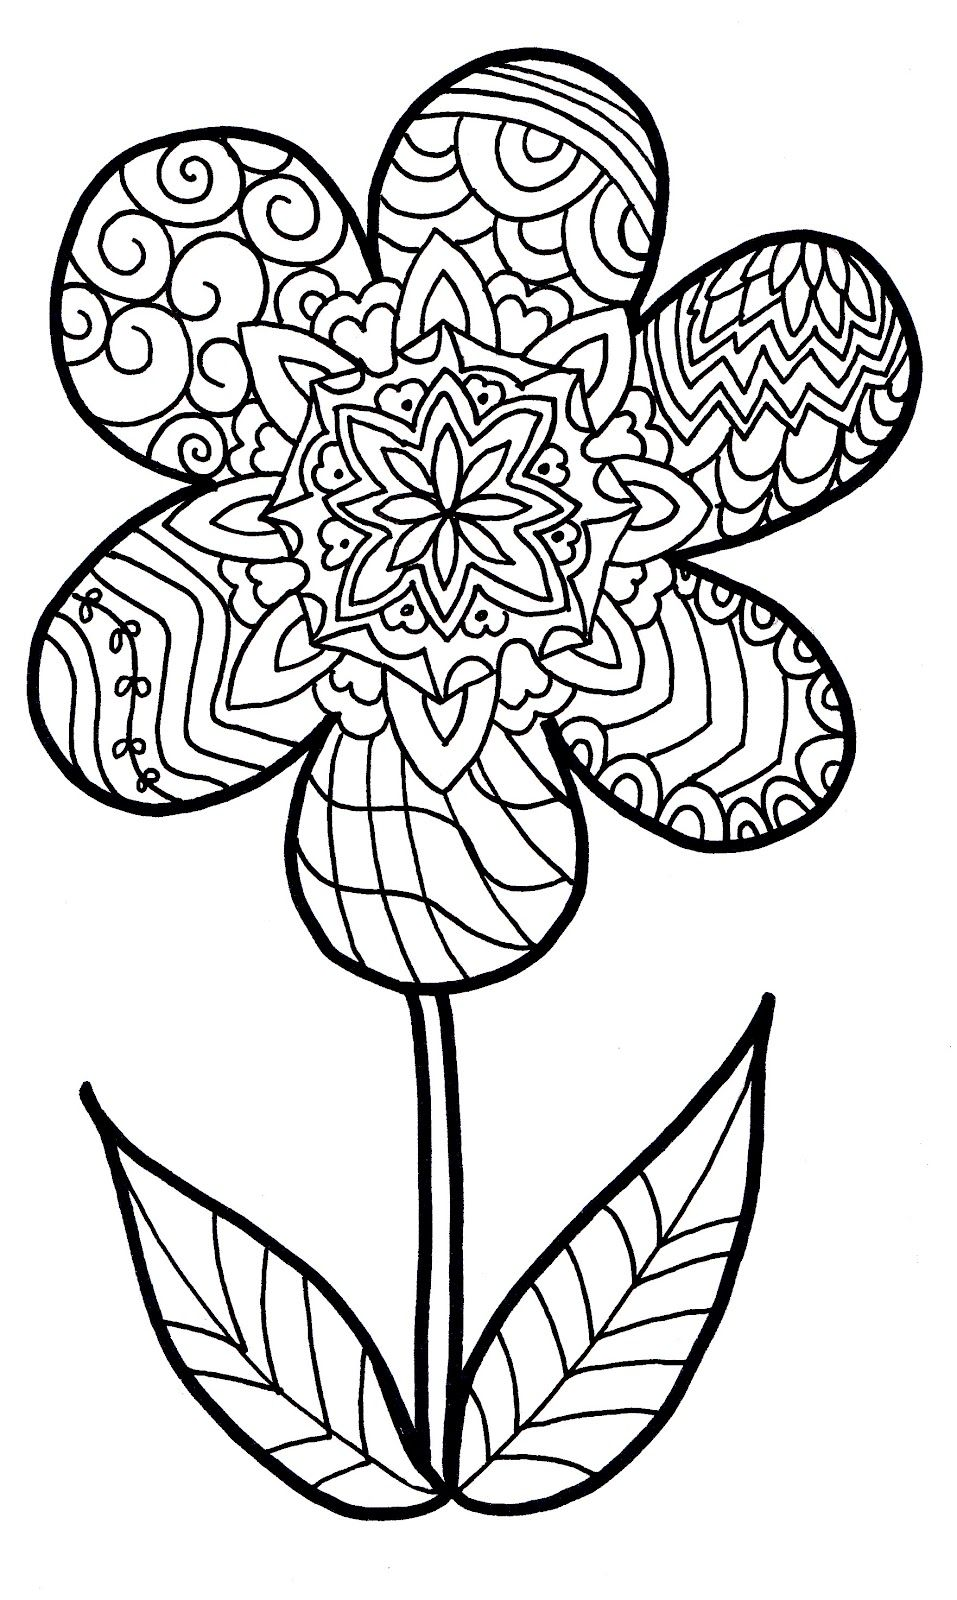 Schöne Ausmalbilder Blumen : Flower Zentangle Colouring Page Jpg 957 1600 Coloring Pages For